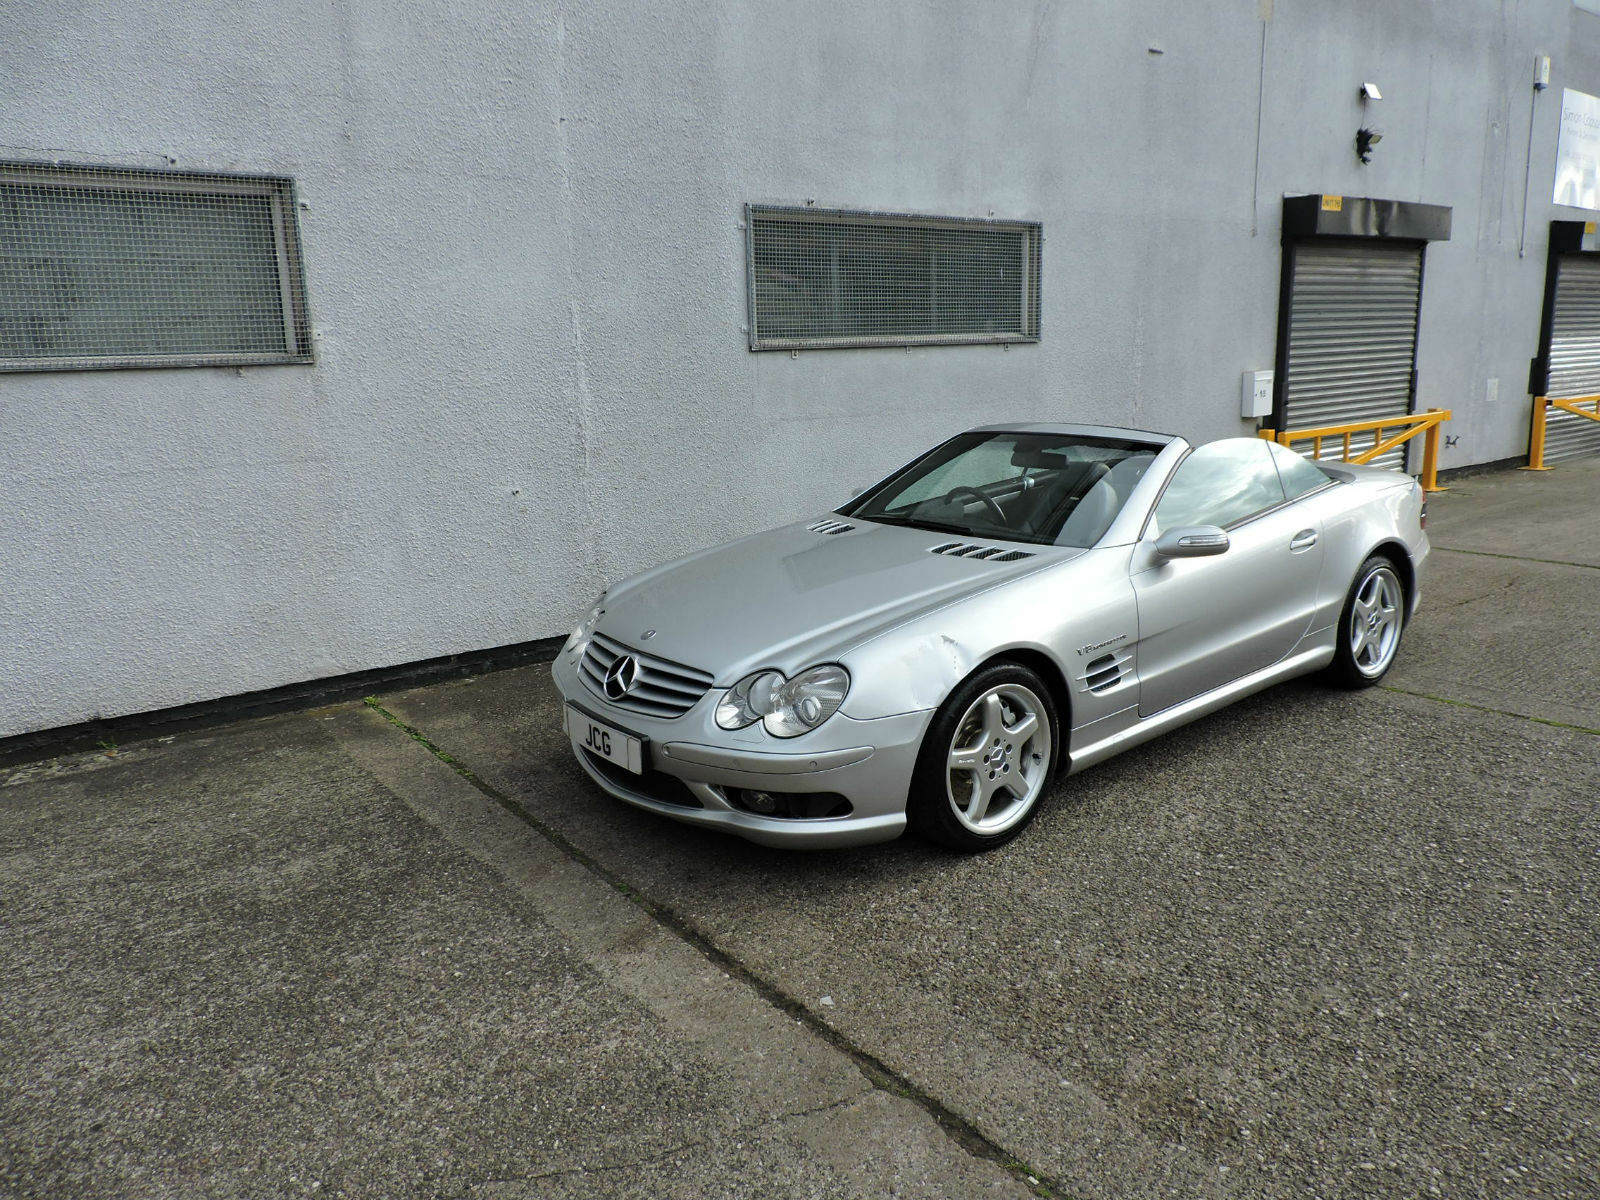 04 mercedes benz sl55 amg 5 5 kompressor auto damaged salvage repairable 10 picclick uk. Black Bedroom Furniture Sets. Home Design Ideas